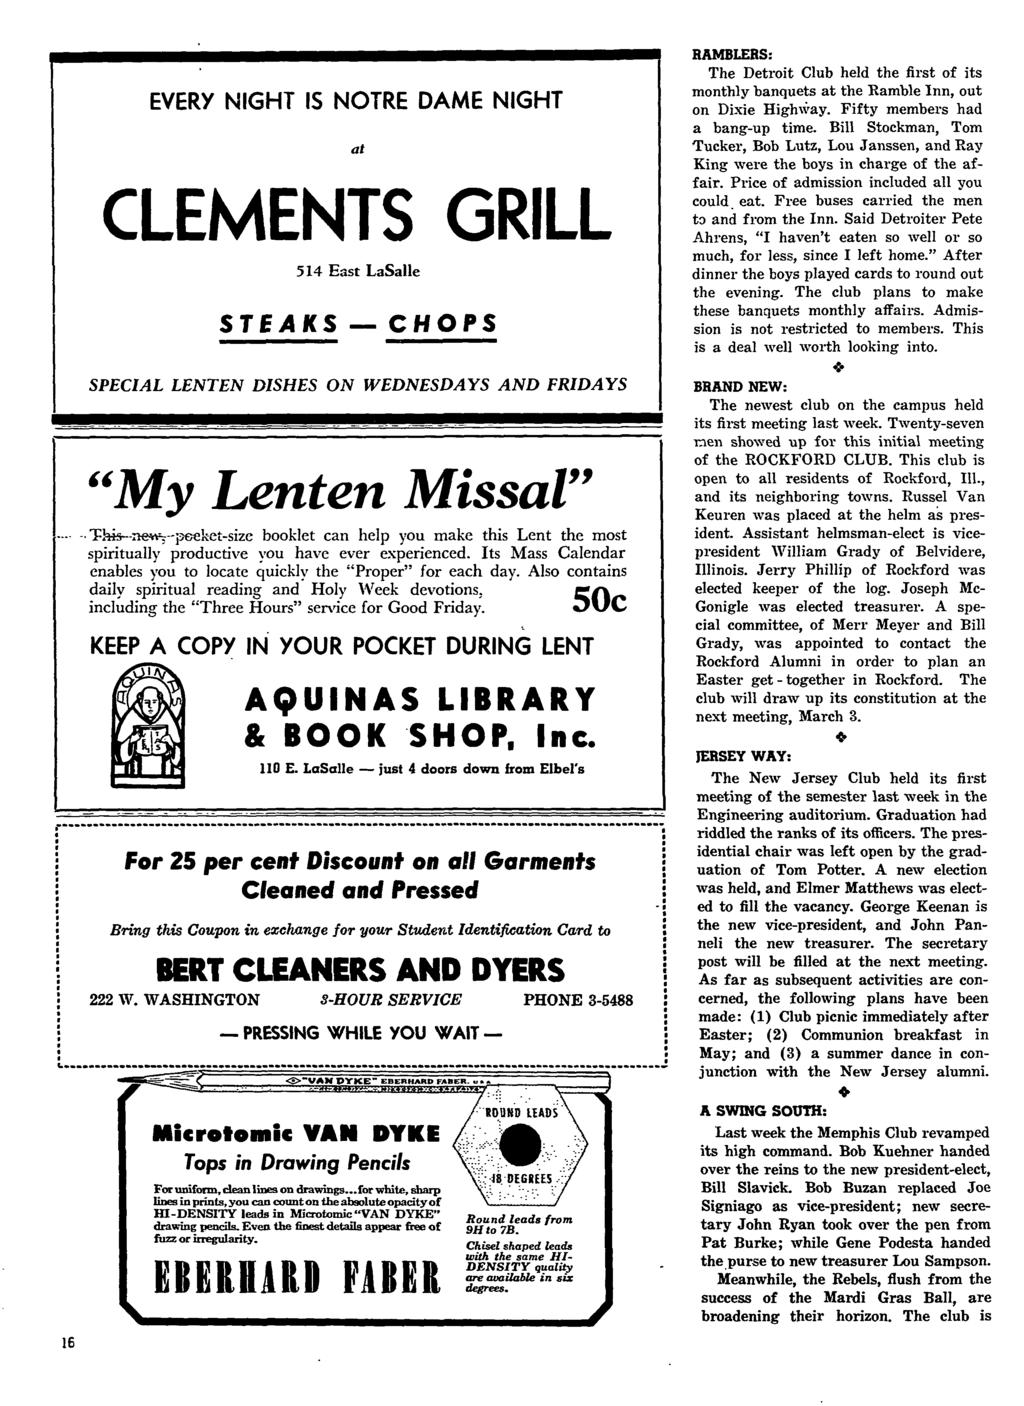 "16 EVERY NIGHT IS NOTRE DAME NIGHT at CLEMENTS GRILL STEAKS 514 East LaSalle CHOPS SPECIAL LENTEN DISHES ON WEDNESDAYS AND FRIDAYS ""My Lenten Missal"" This newj-peeket-size booklet can help you make"